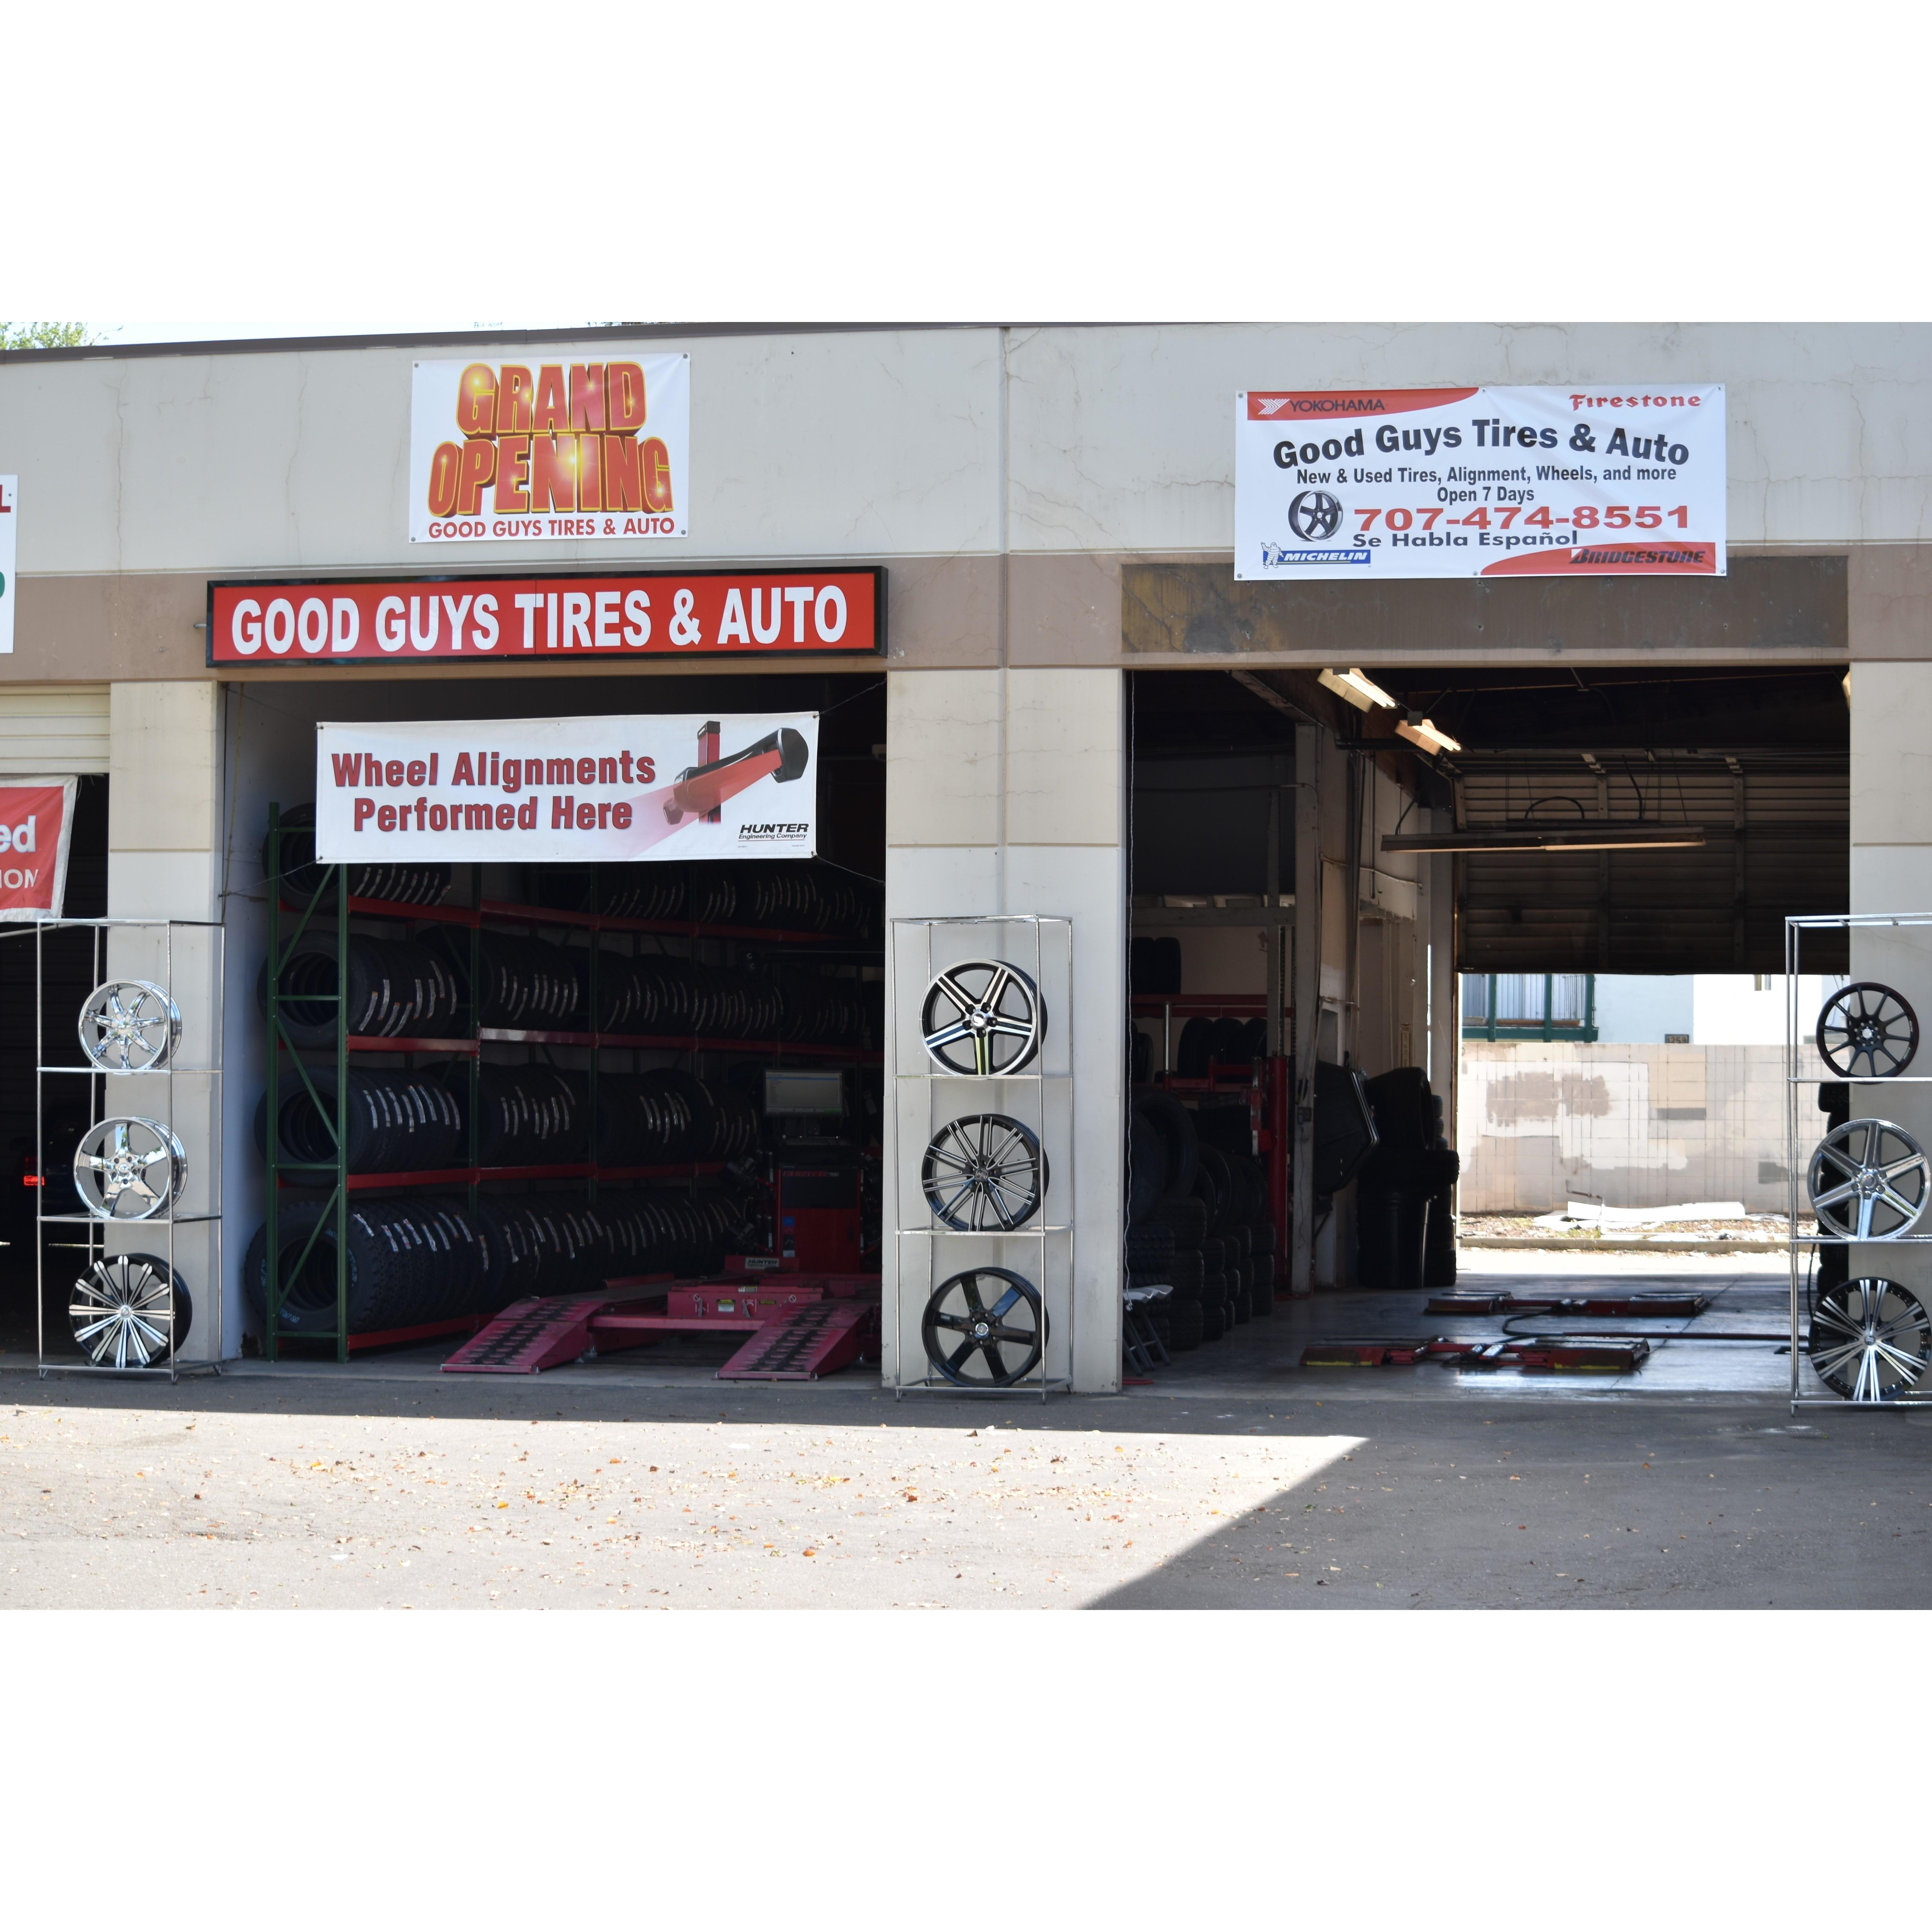 Good Guys Tires & Auto